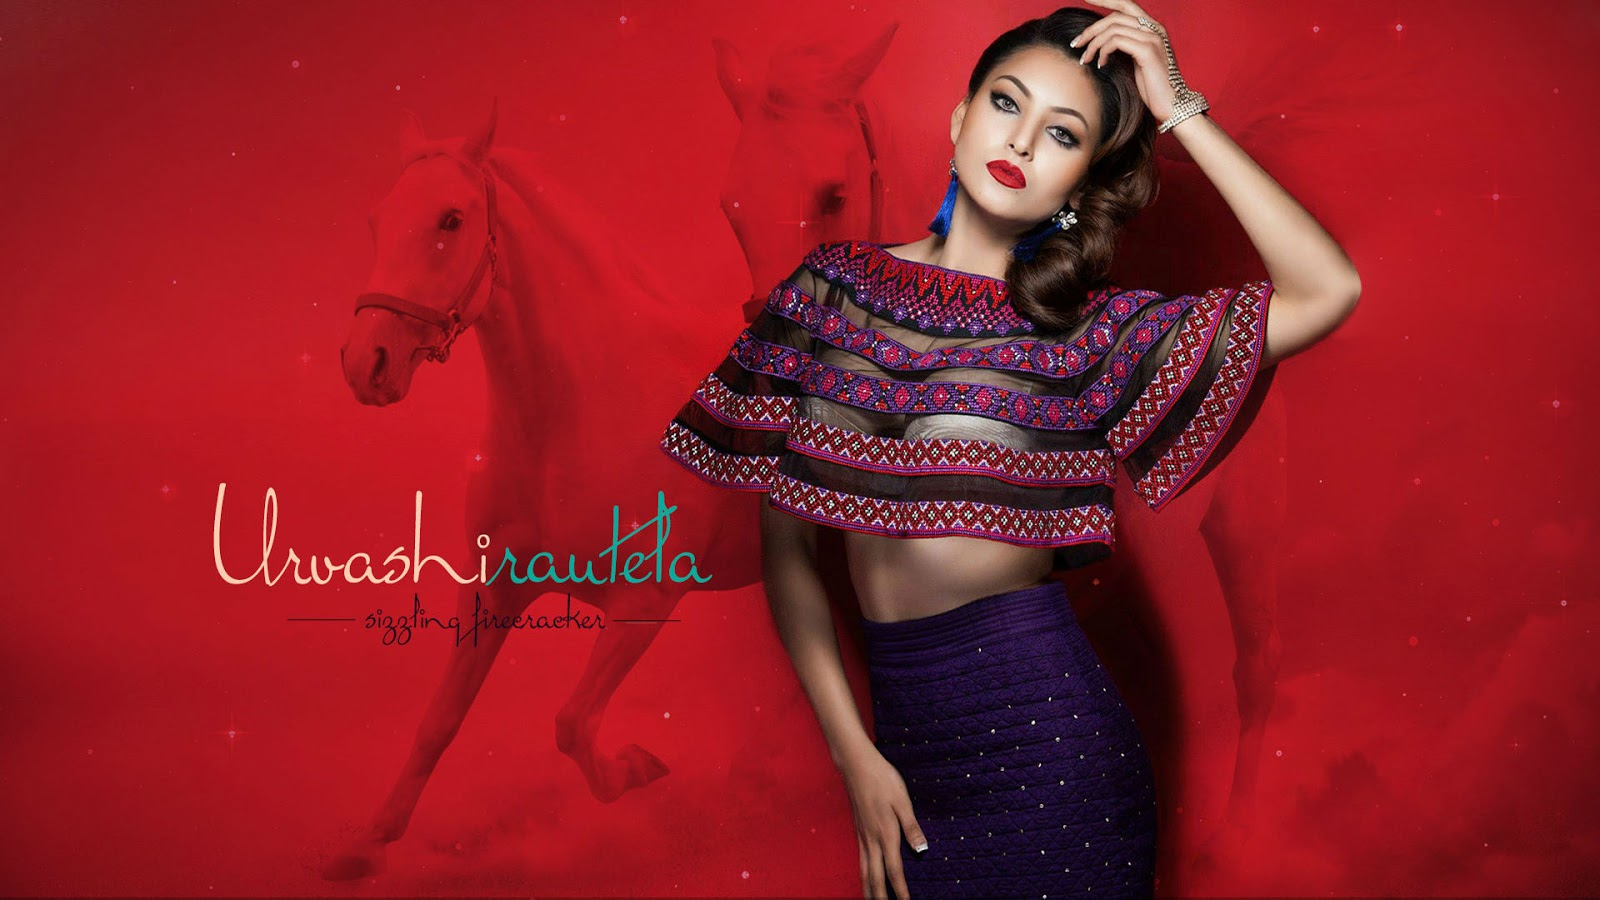 Urvashi Rautela Hd Wallpapers 1920X1080 - Hot Photoshoot -7938